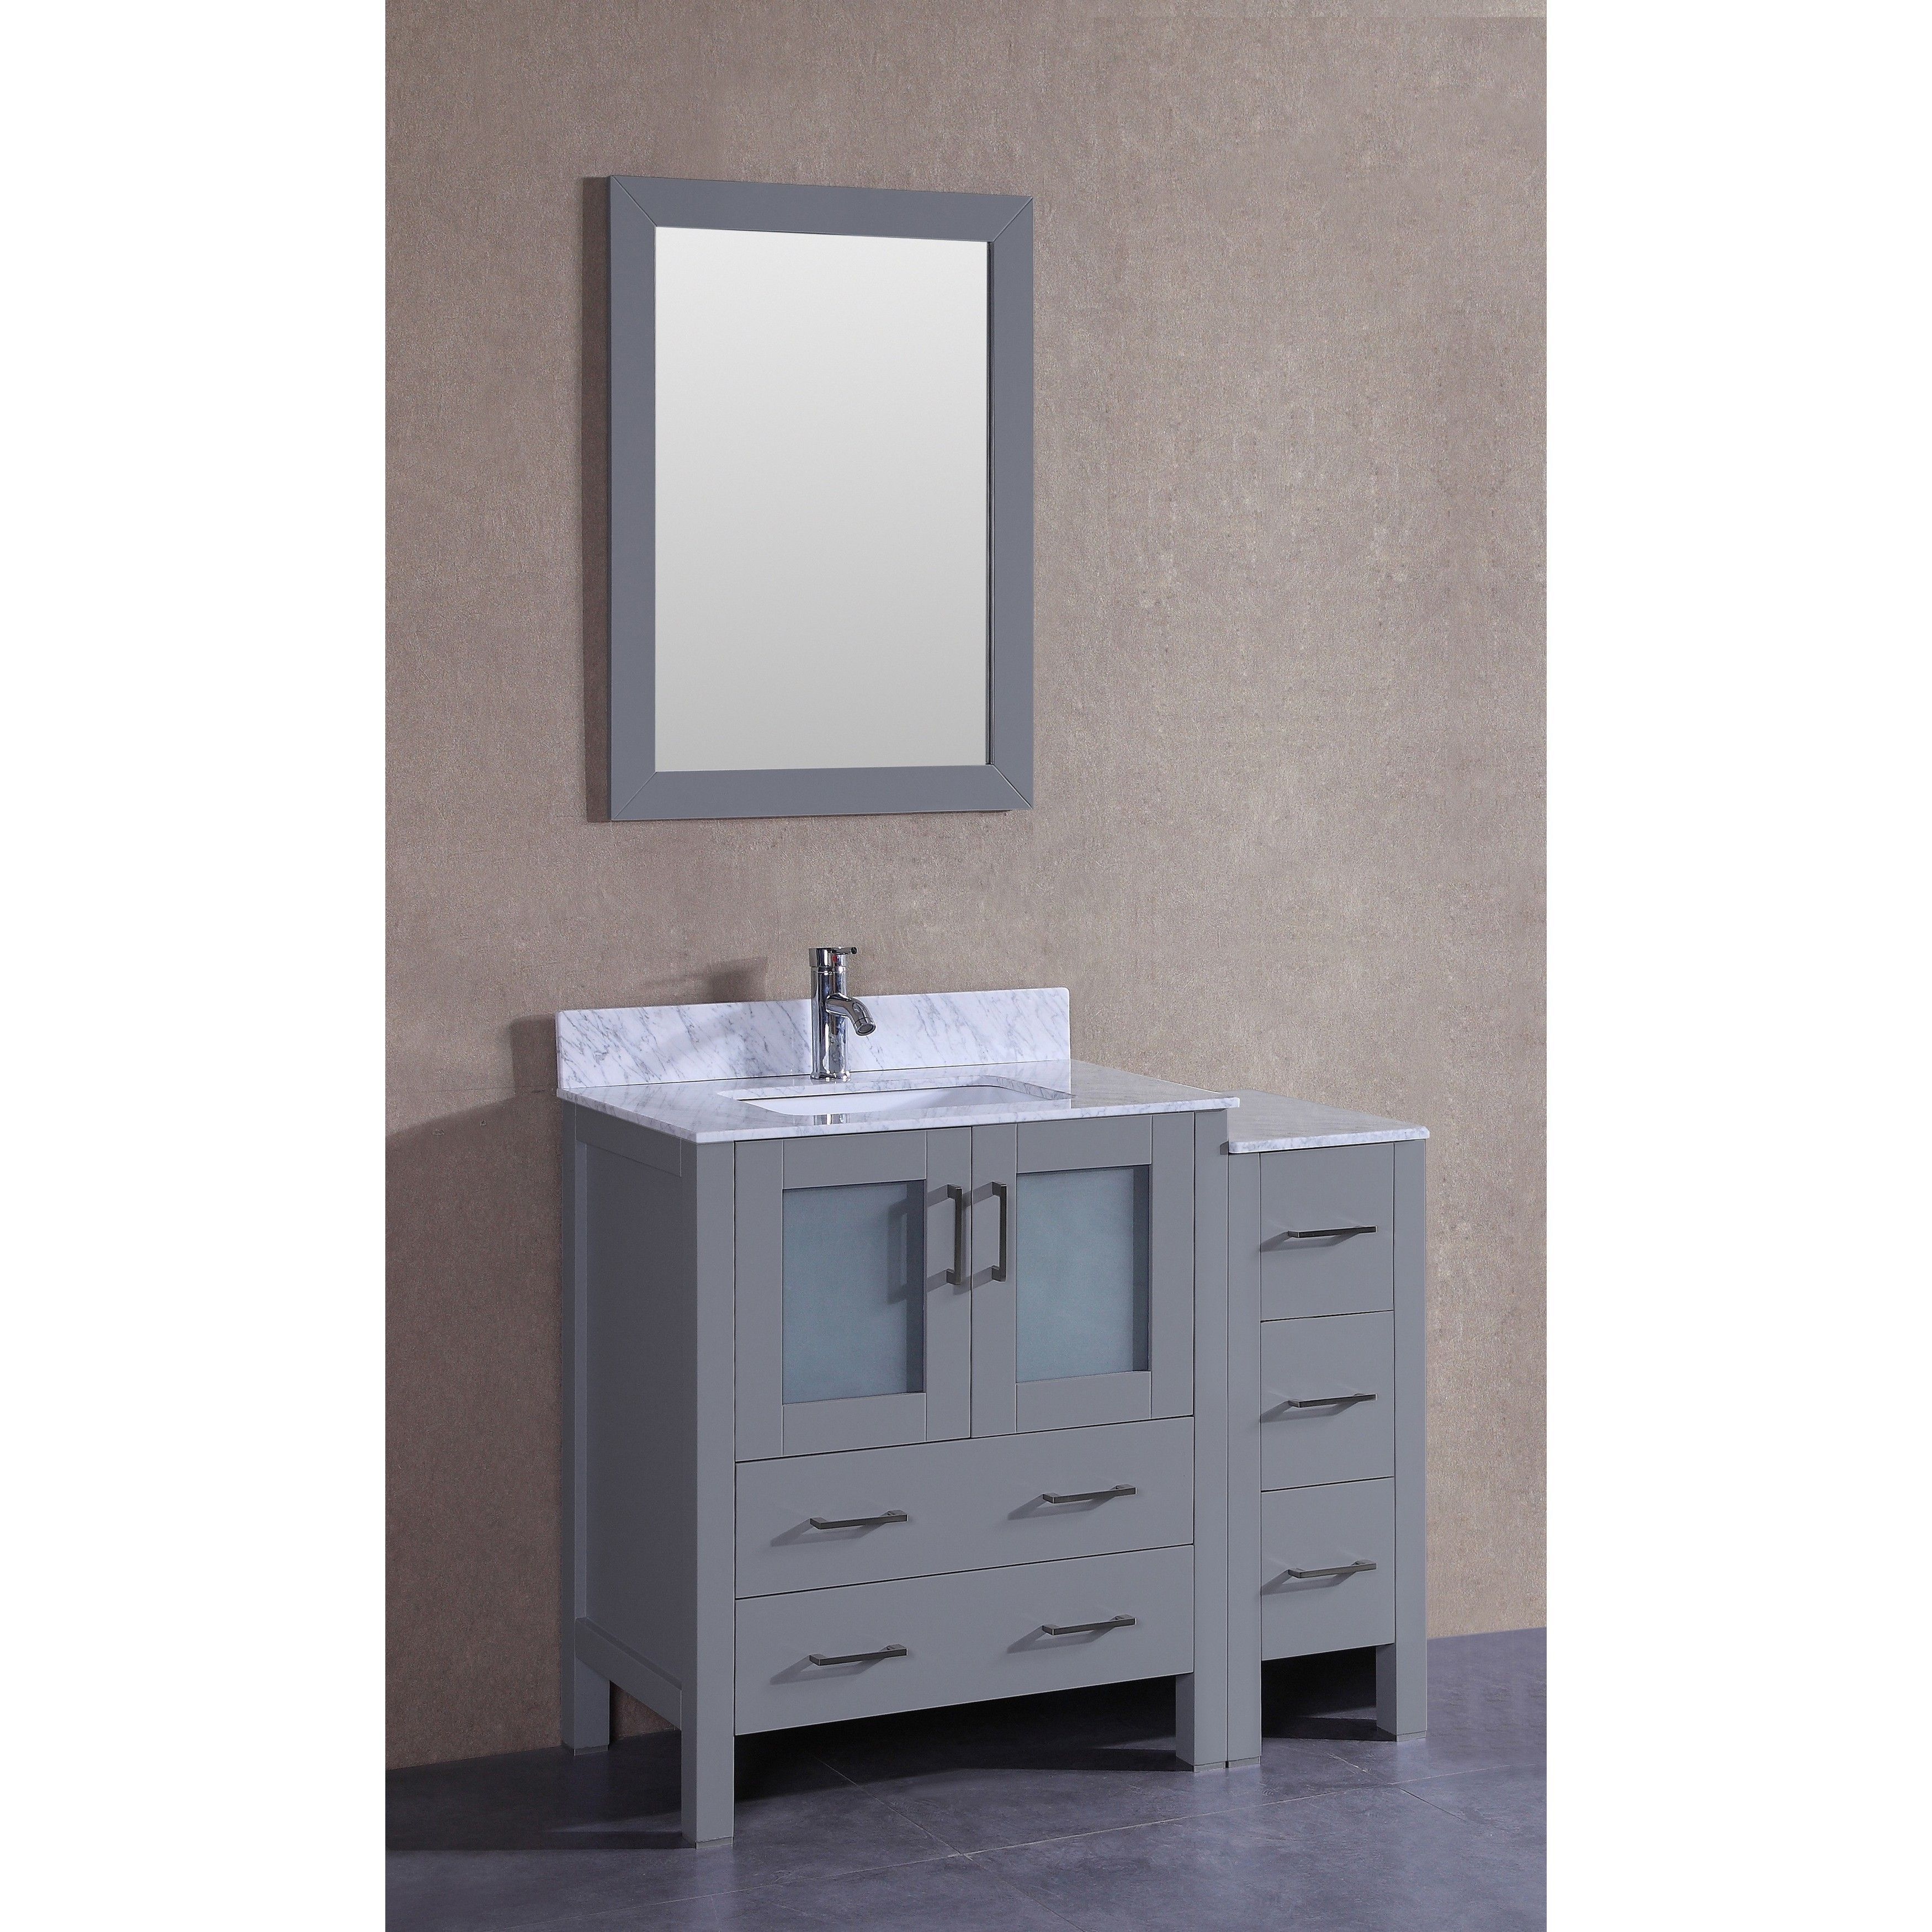 Bosconi 42 inch Single Vanity Cabinet with Bi level A White Marble